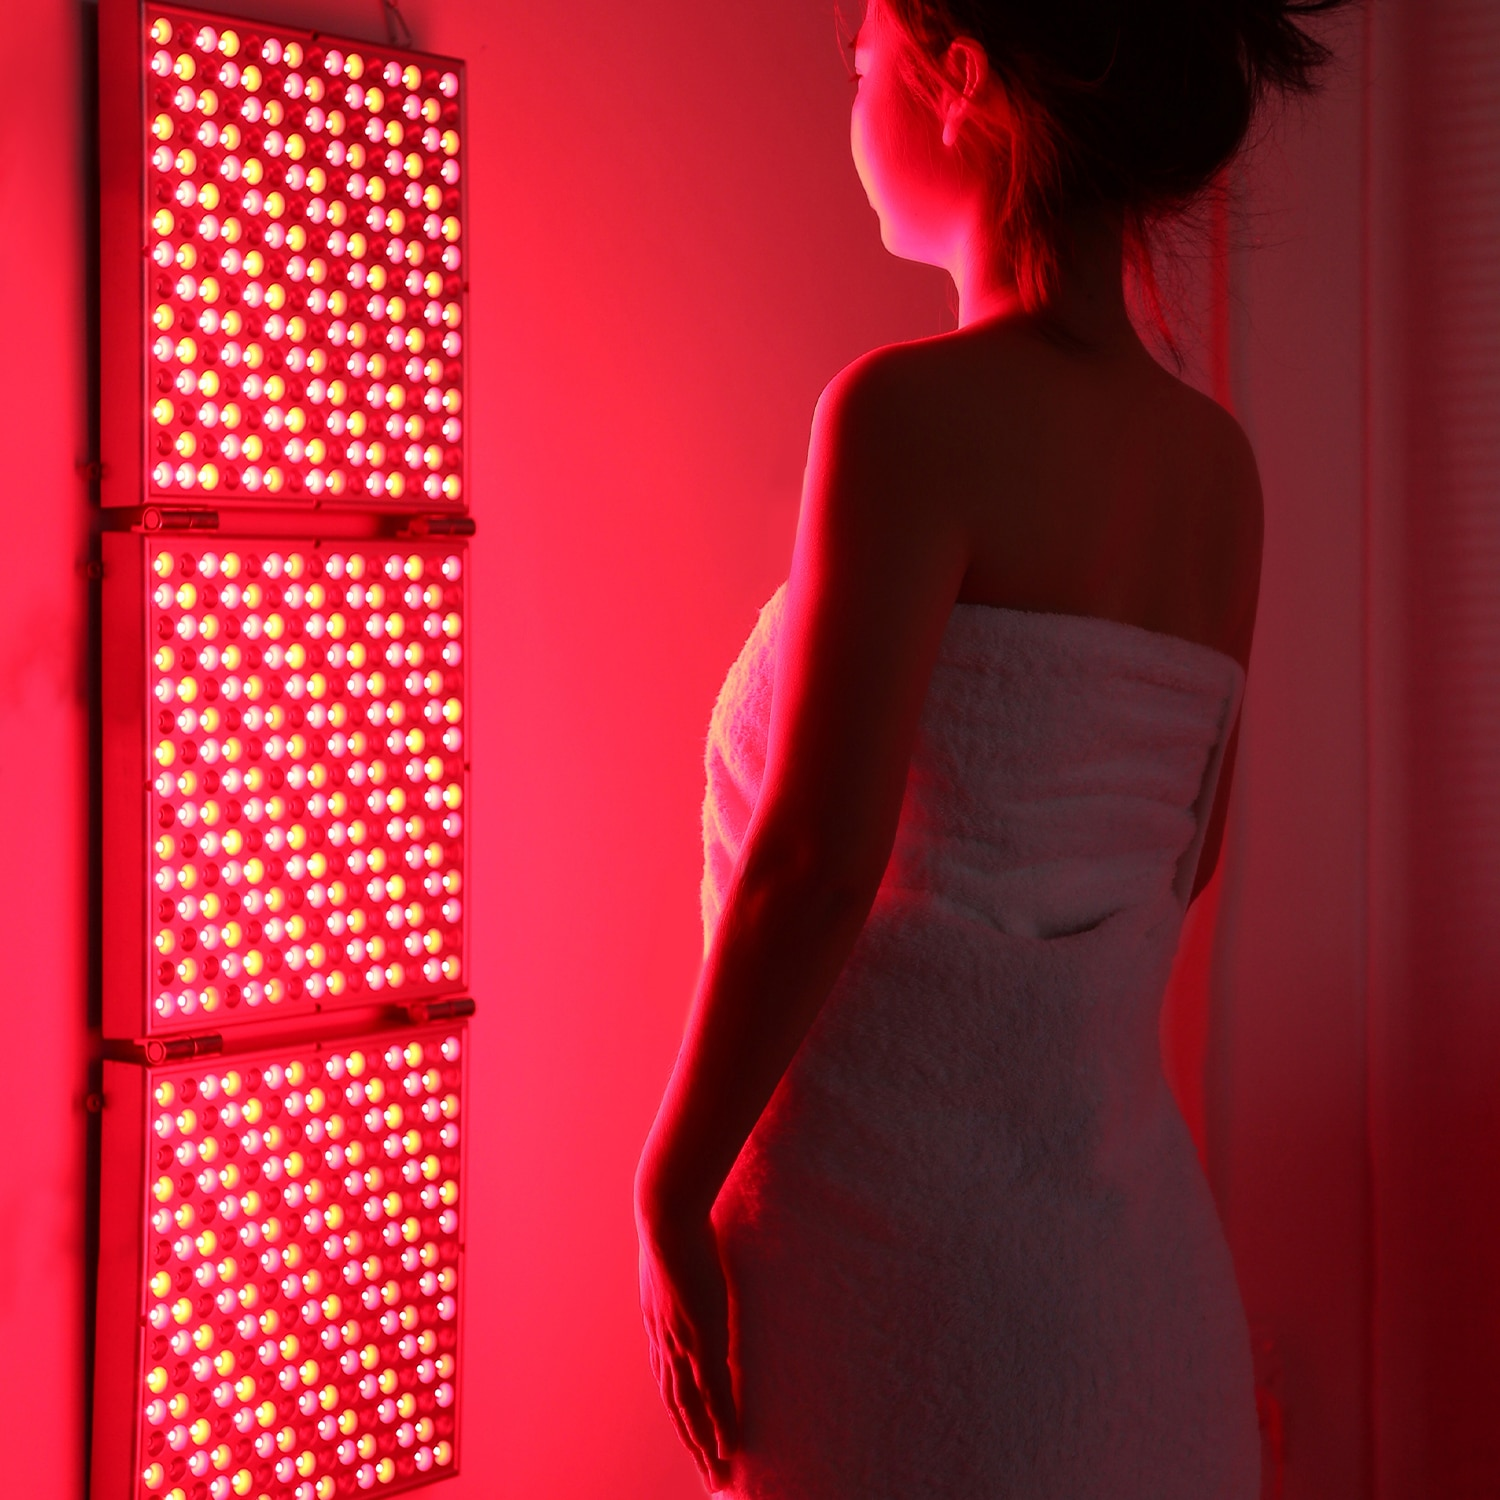 Red Light Therapy 135W Panel Device Infra Led Full Body Medical for Skin Beatuy Lamp Deformable Foldable Infrared Face Reg Rowth enlarge